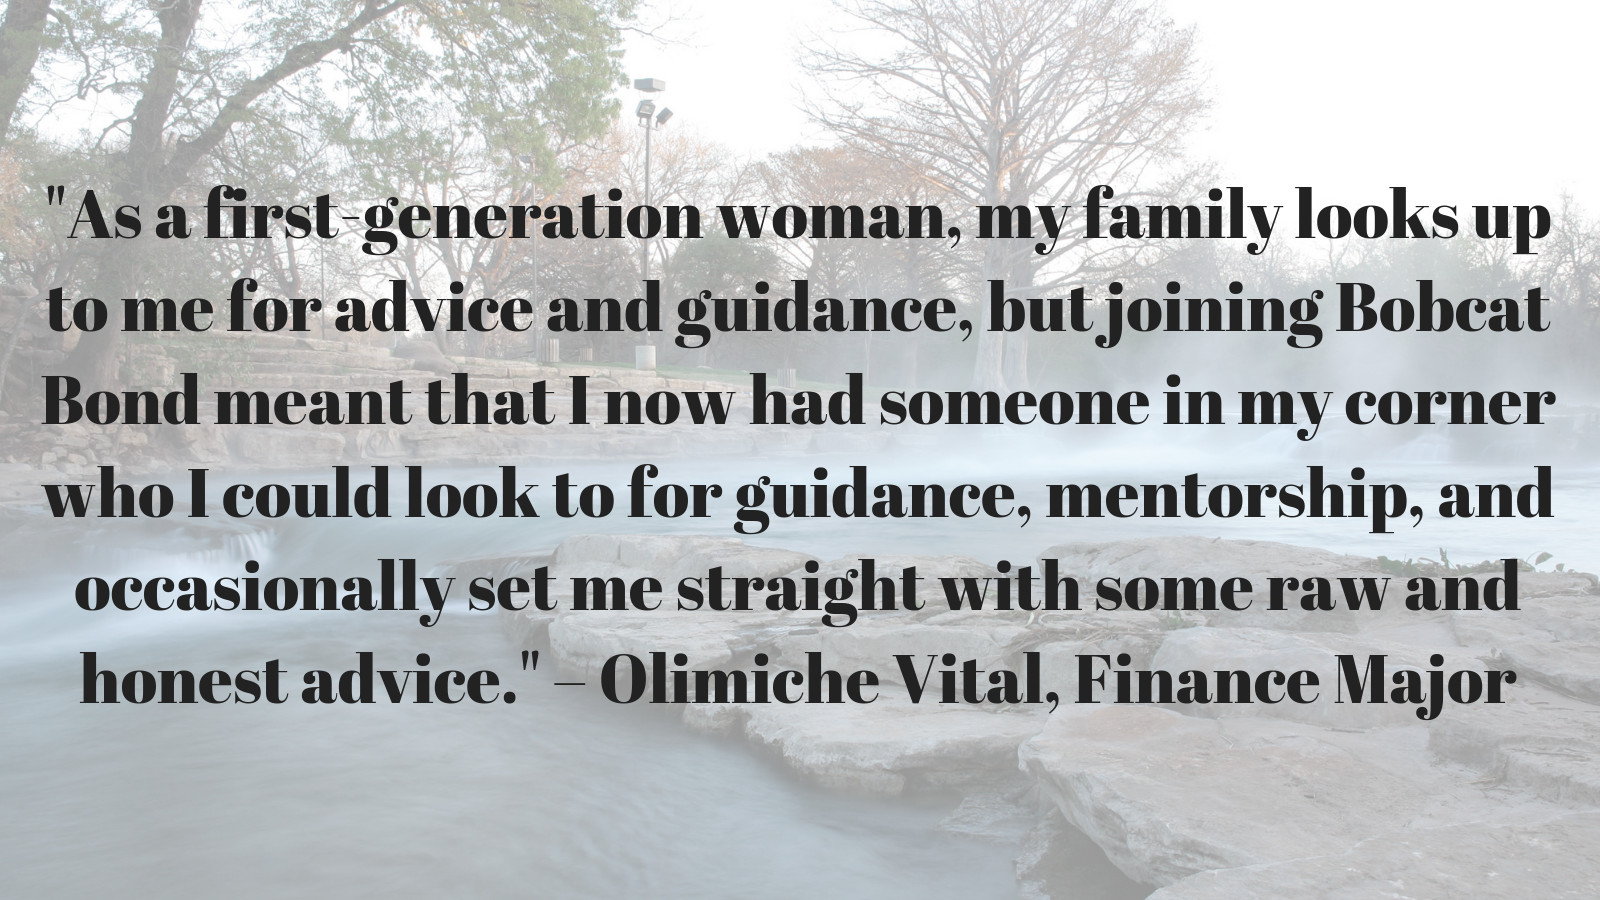 """As a first-generation woman, my family looks up to me for advice and guidance, but joining Bobcat Bond meant that I now had someone in my corner who I could look to for guidance, mentorship, and occasionally set me straight with some raw and honest advice."" – Olimiche Vital, Finance Major"